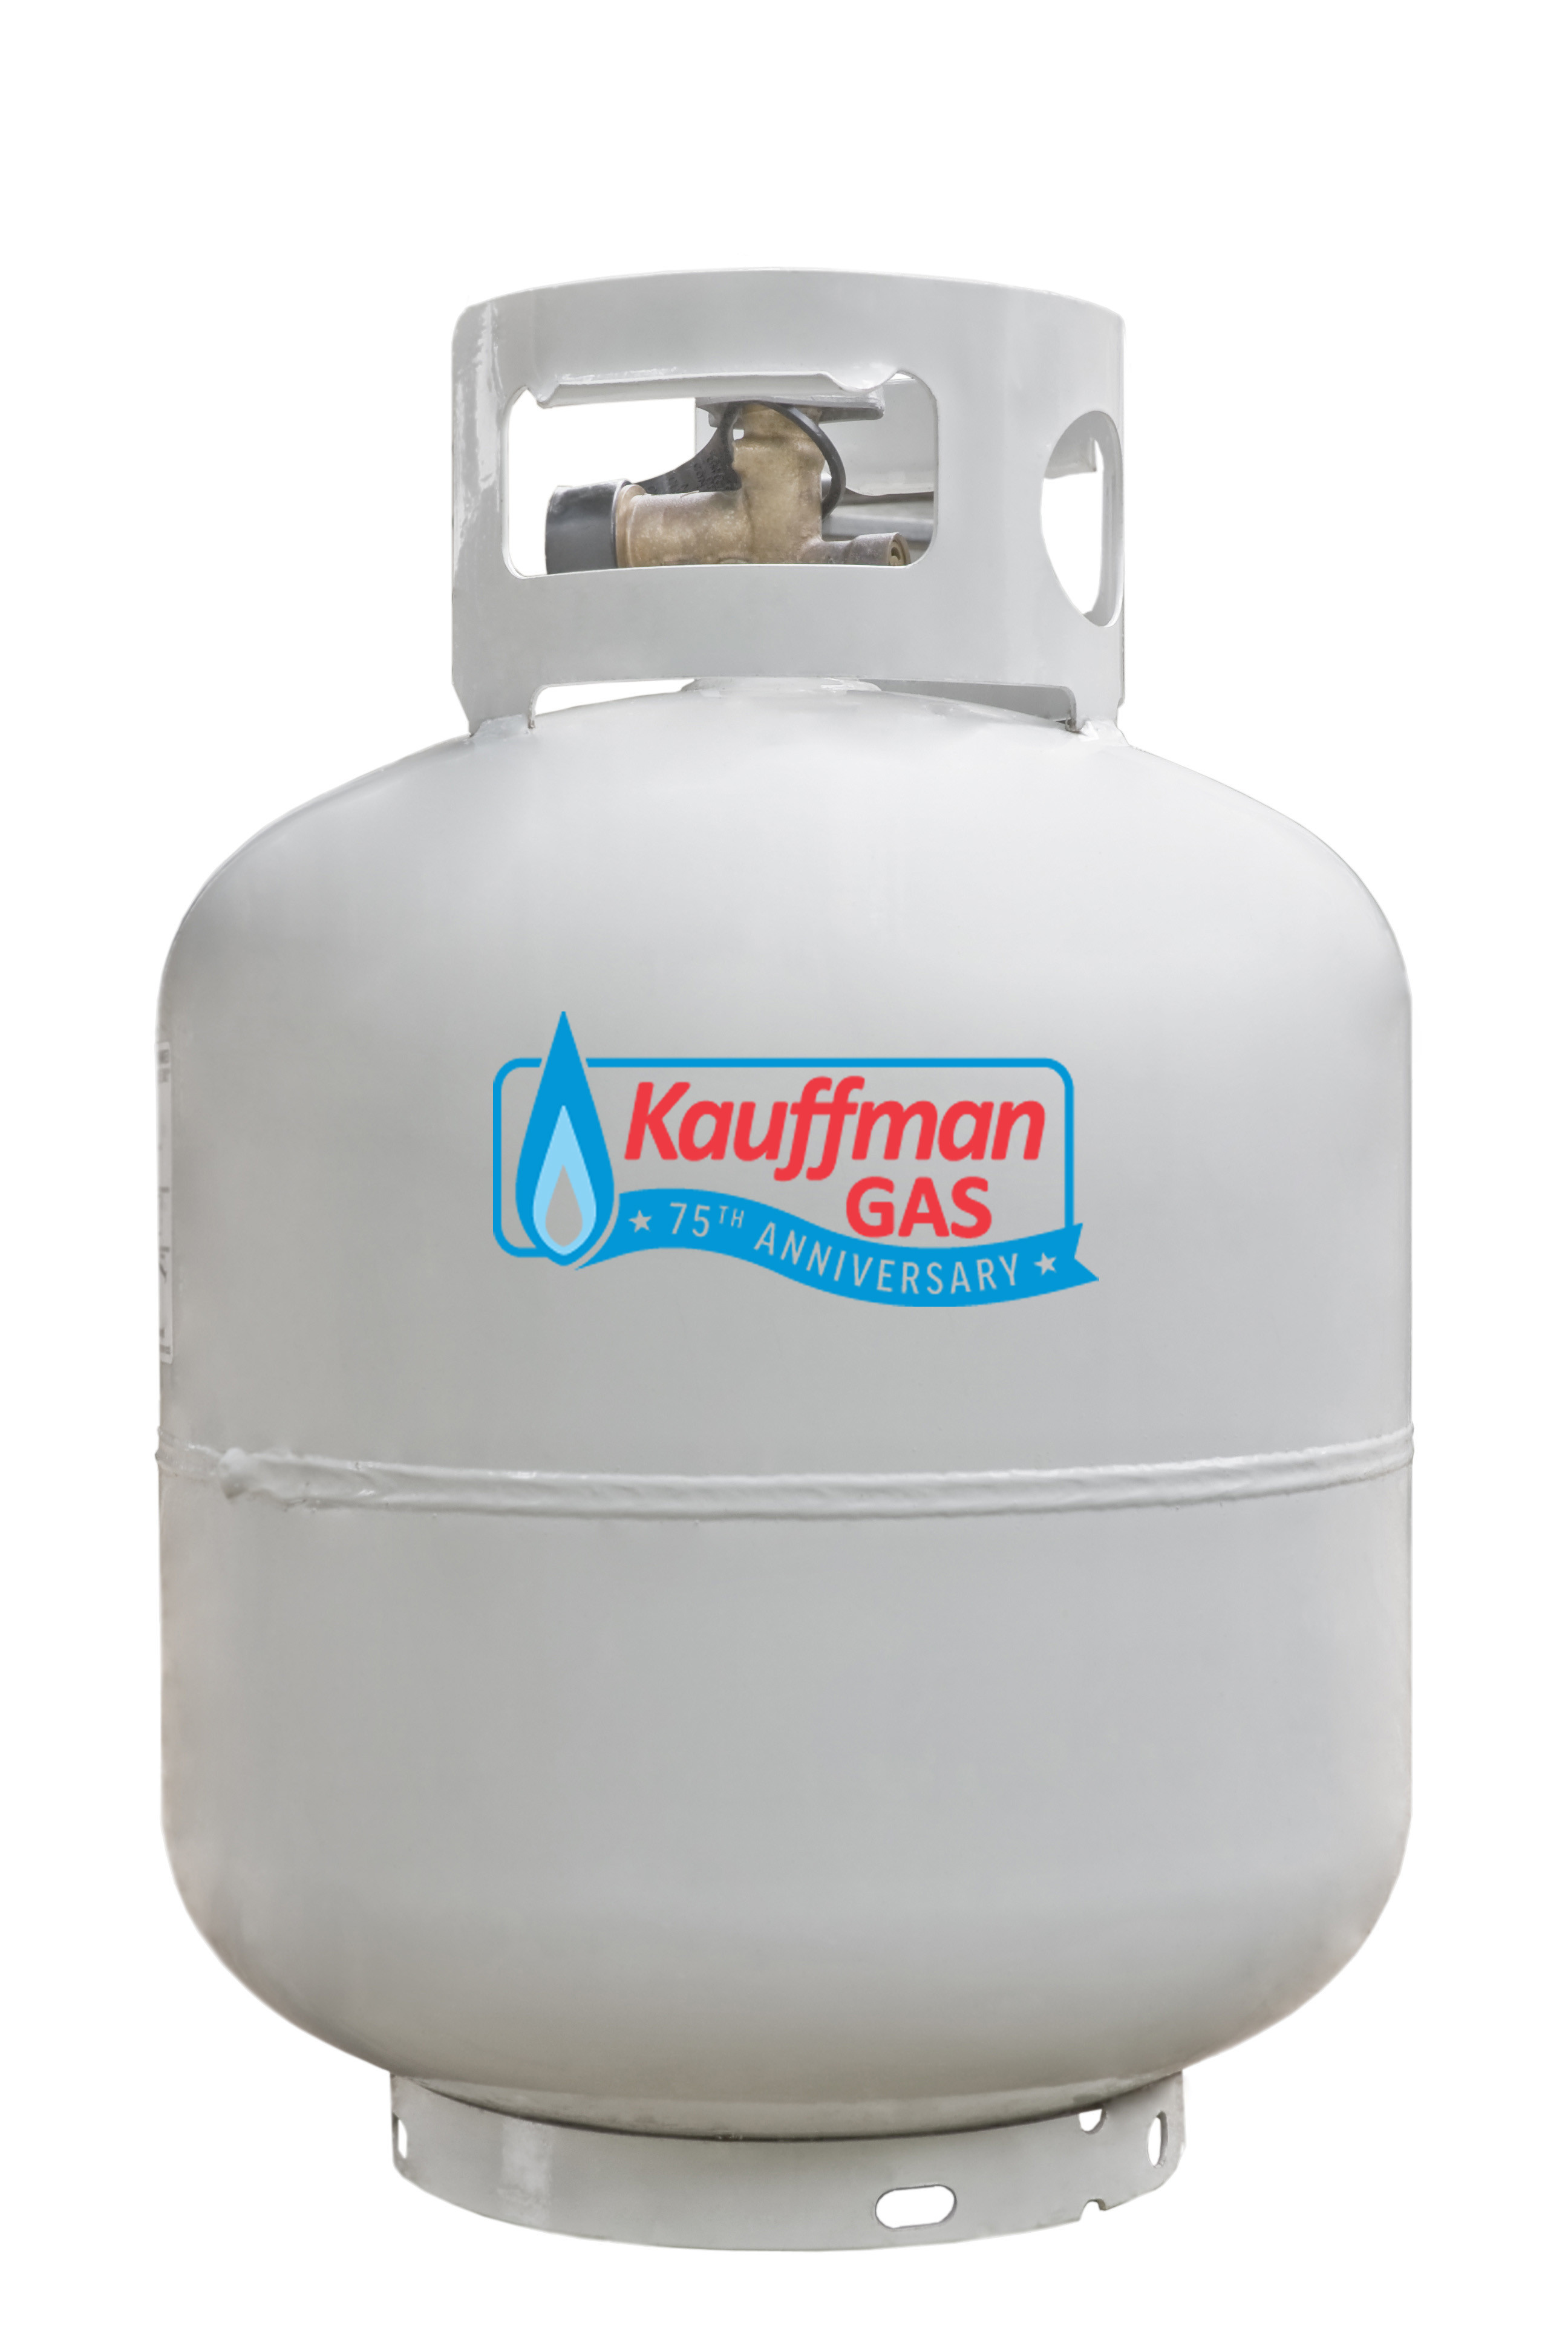 Finding The Right Propane Gas Suppliers Near Me